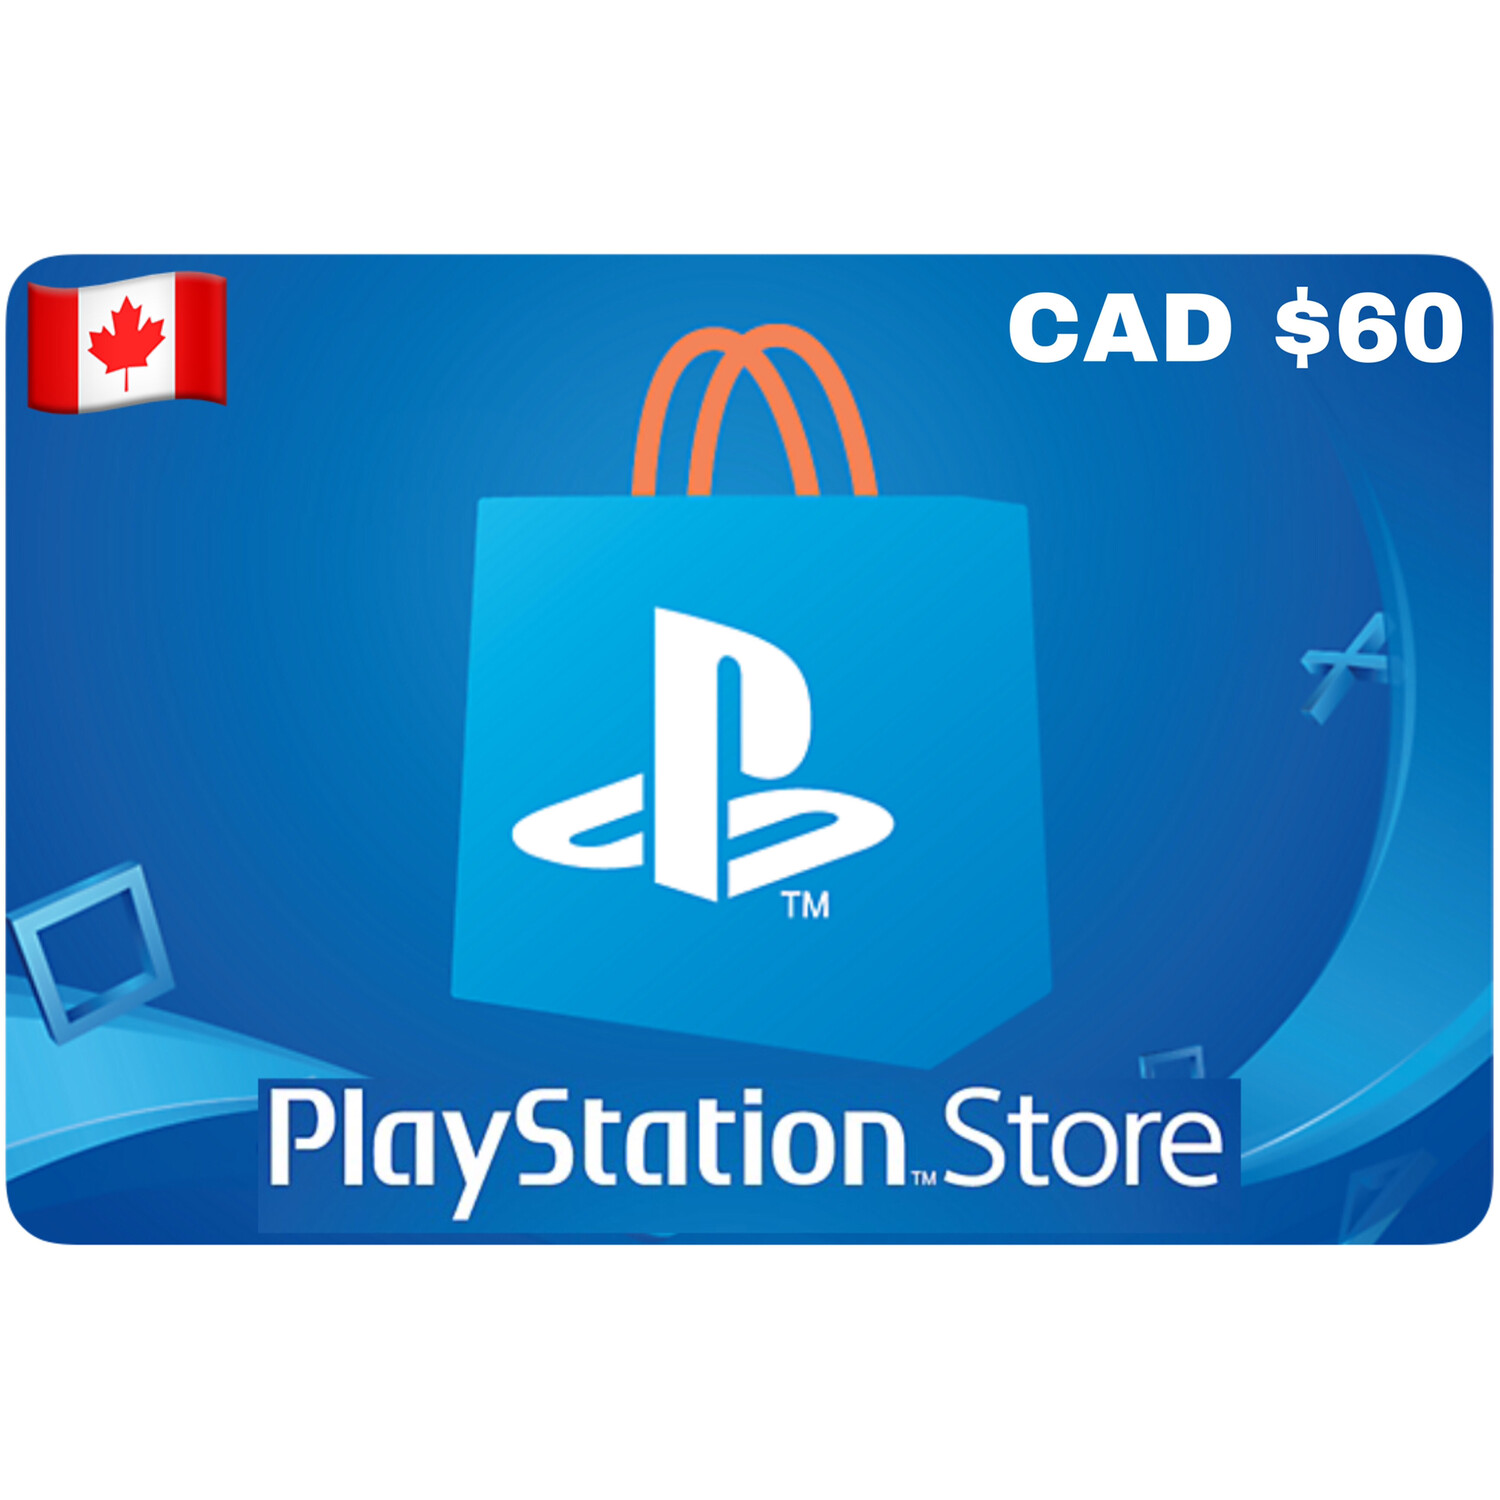 Playstation Store Gift Card Canada $60